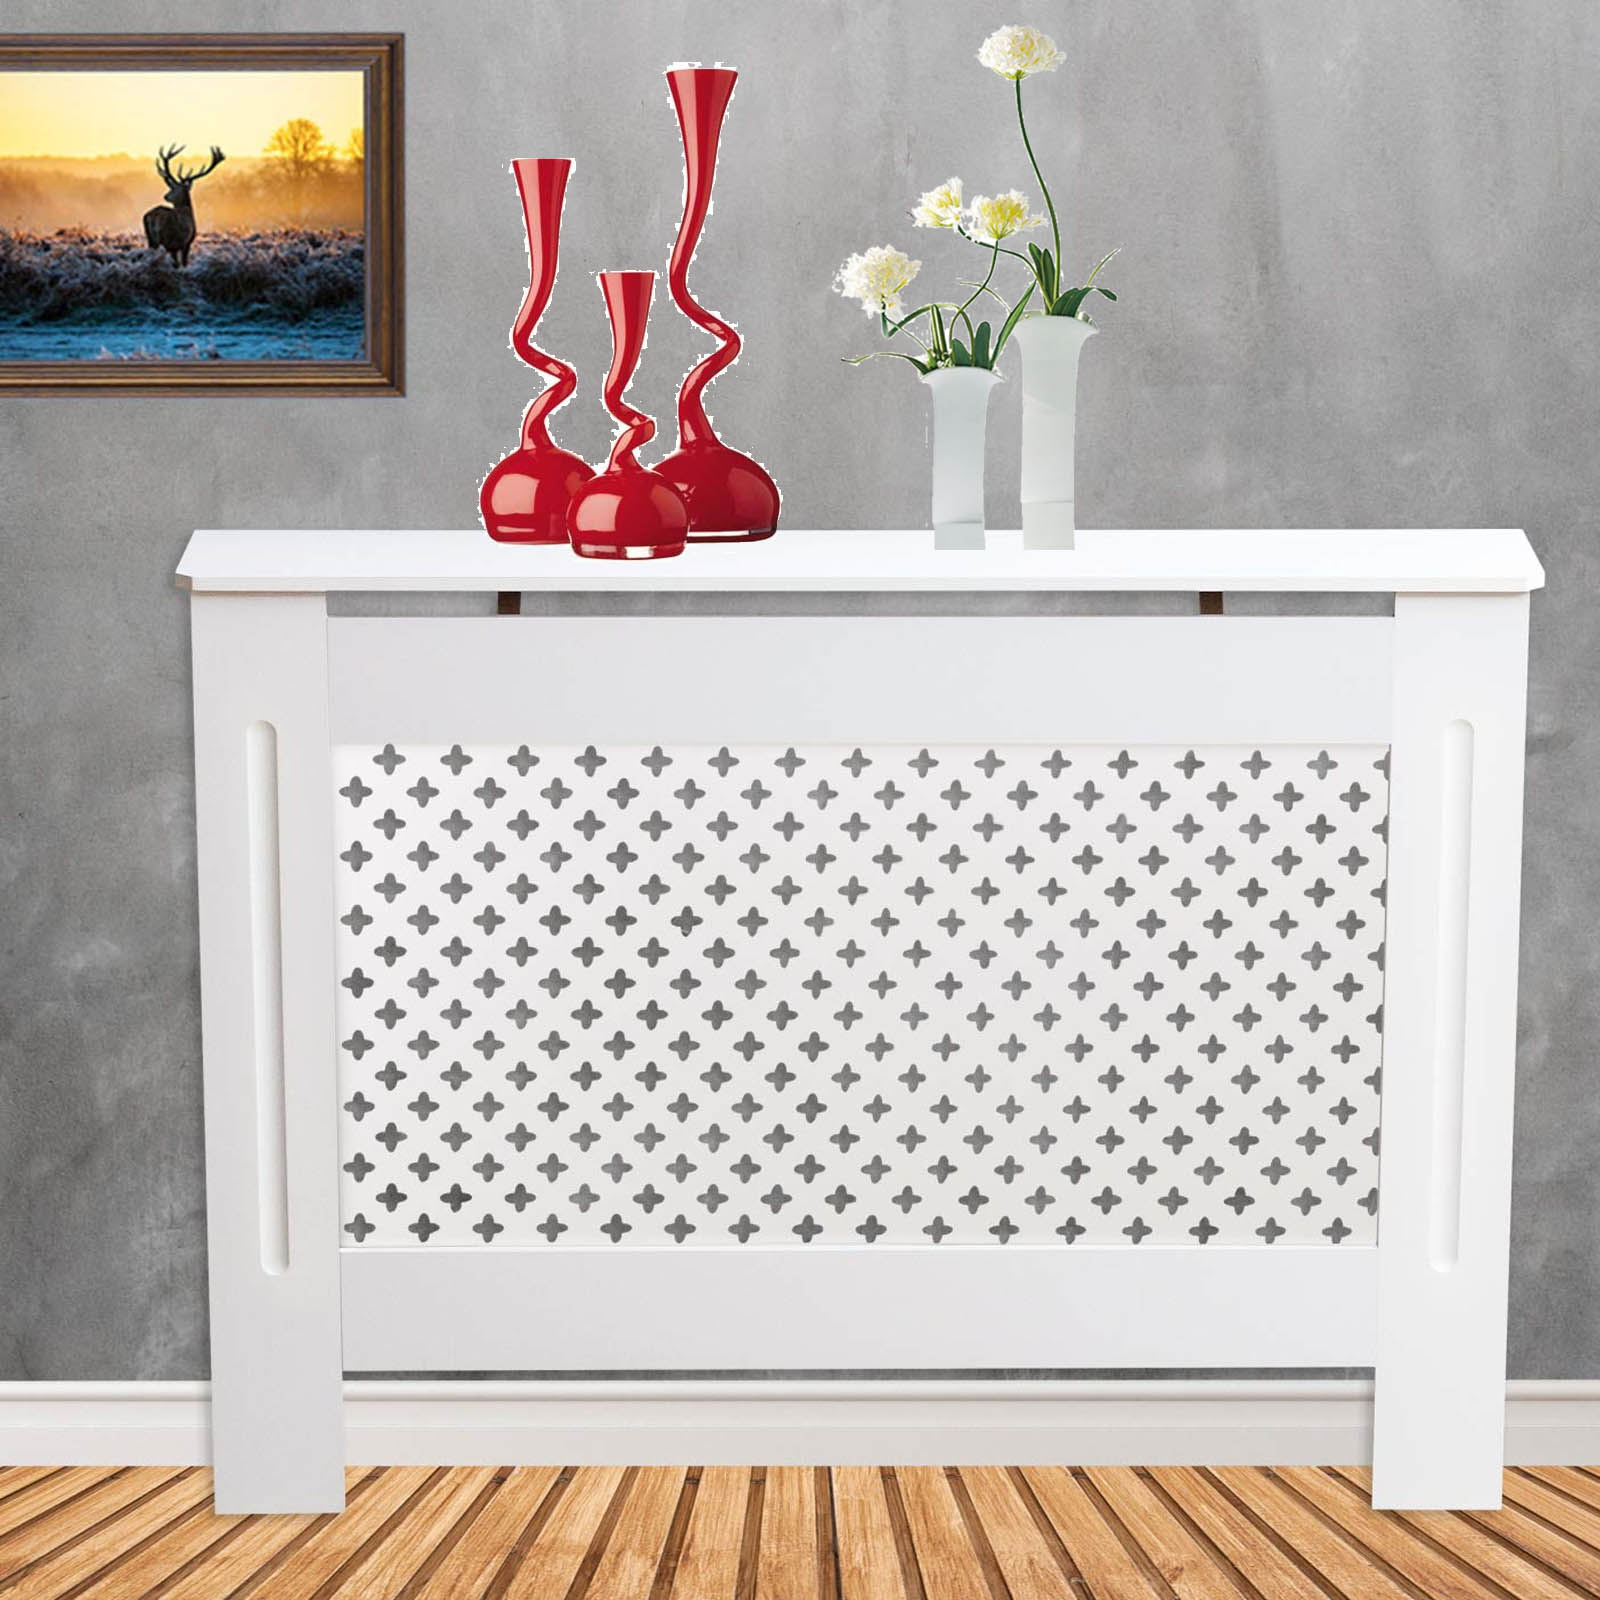 Medium Natural MDF Wood Radiator Heater Cover Case Cabinet Grill Protector Horizontal White Painted Oxford Style H 82 x W 112x D 19 Cm